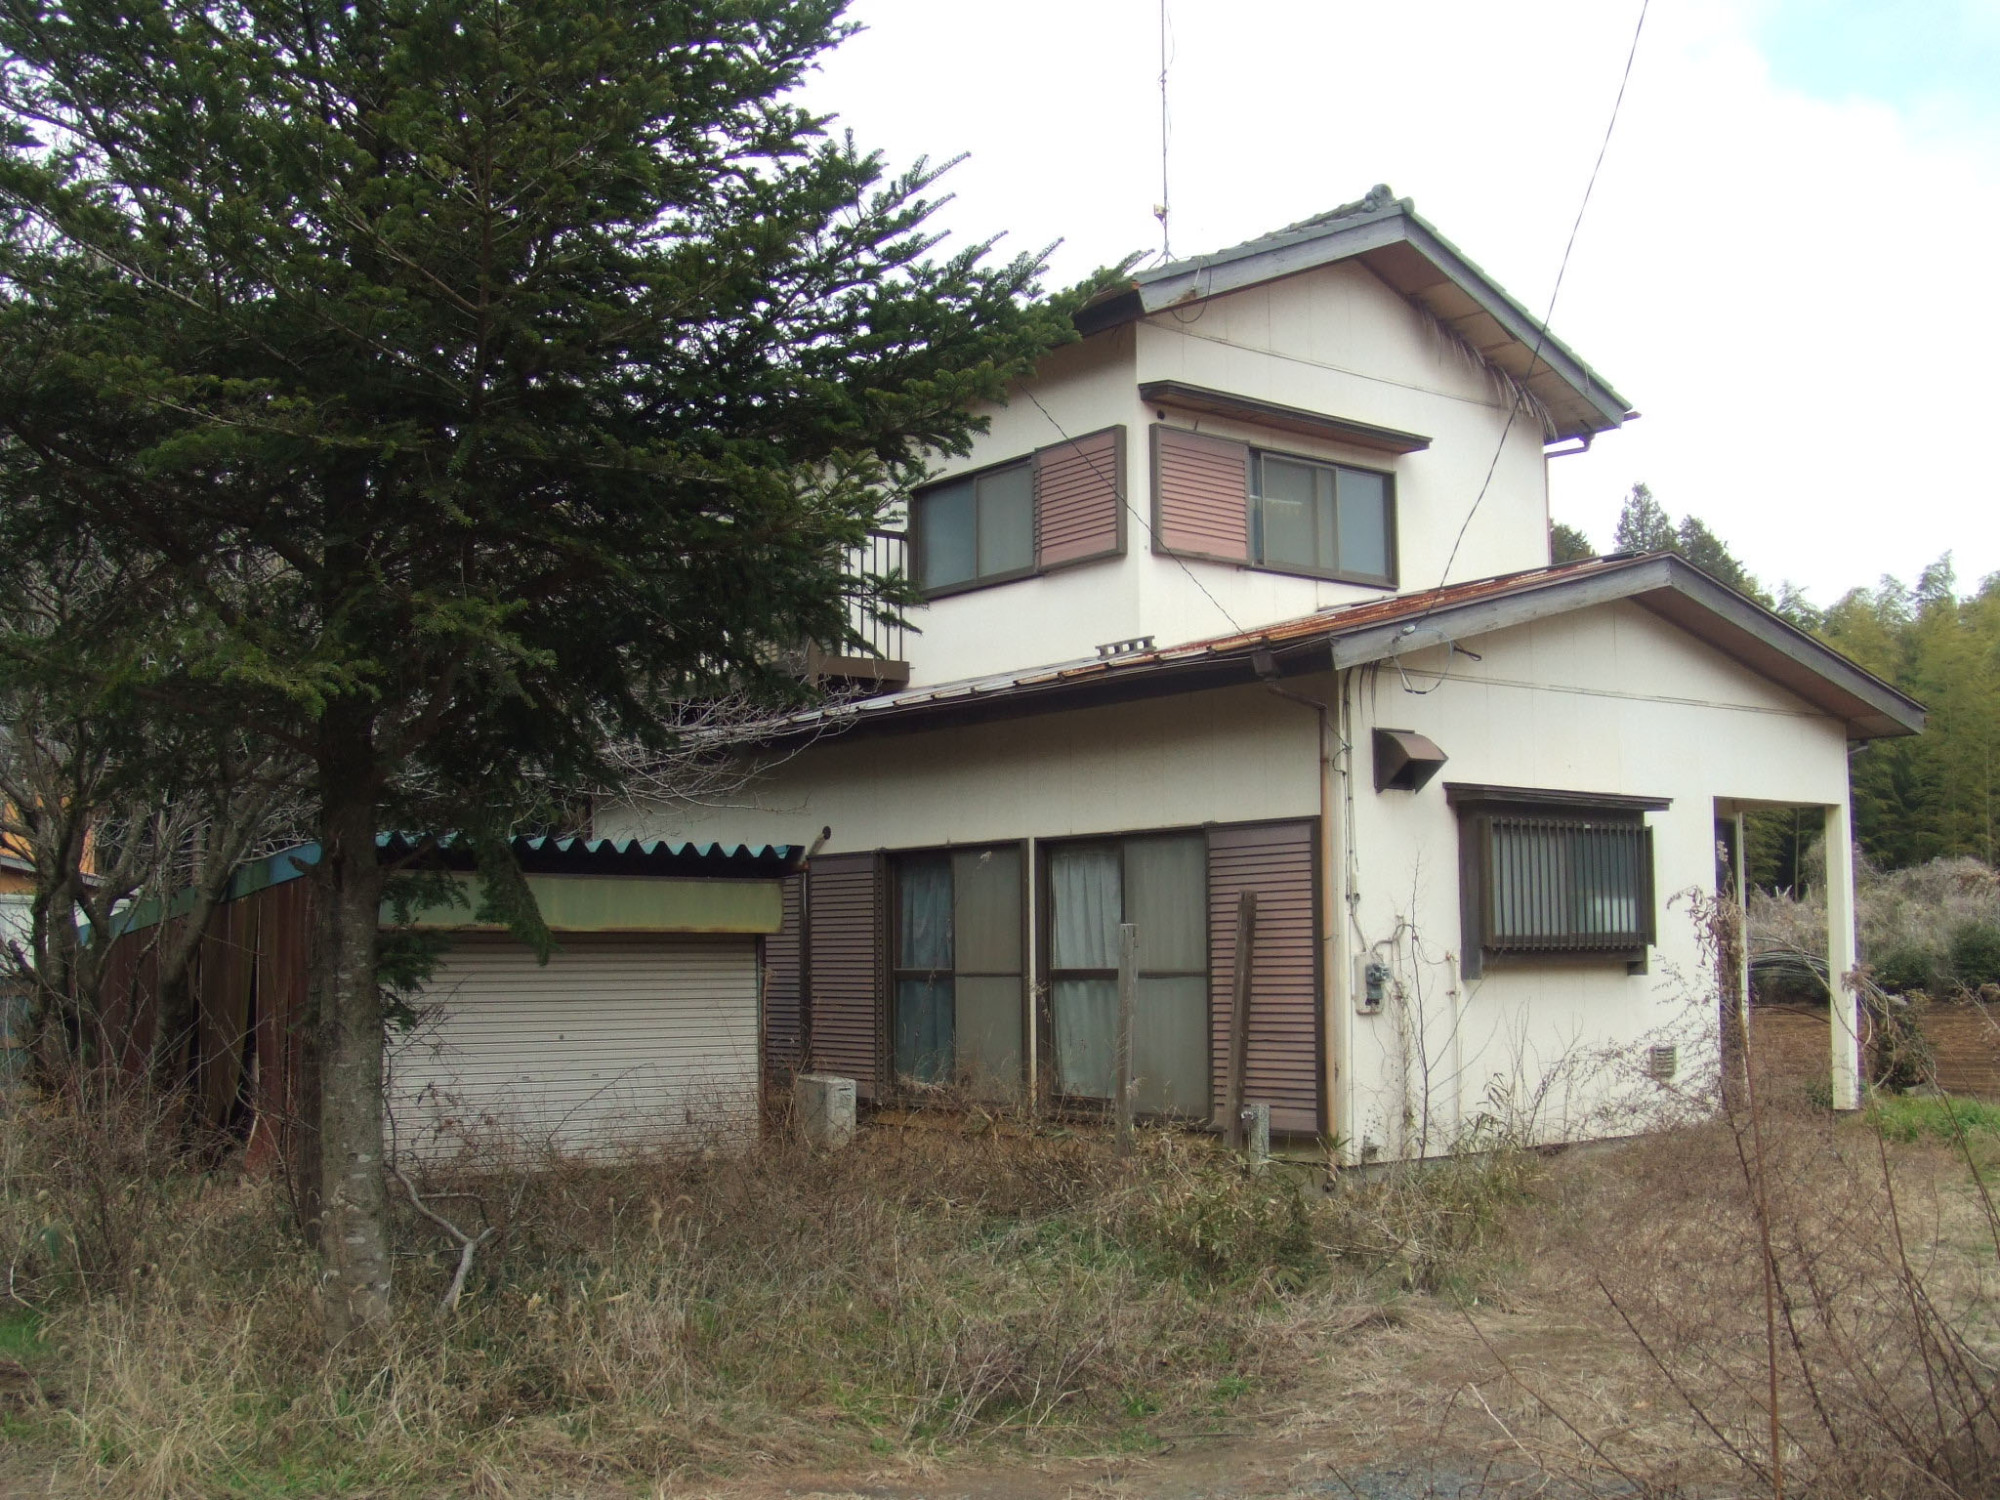 Abandoned buildings still house problems   The Japan Times